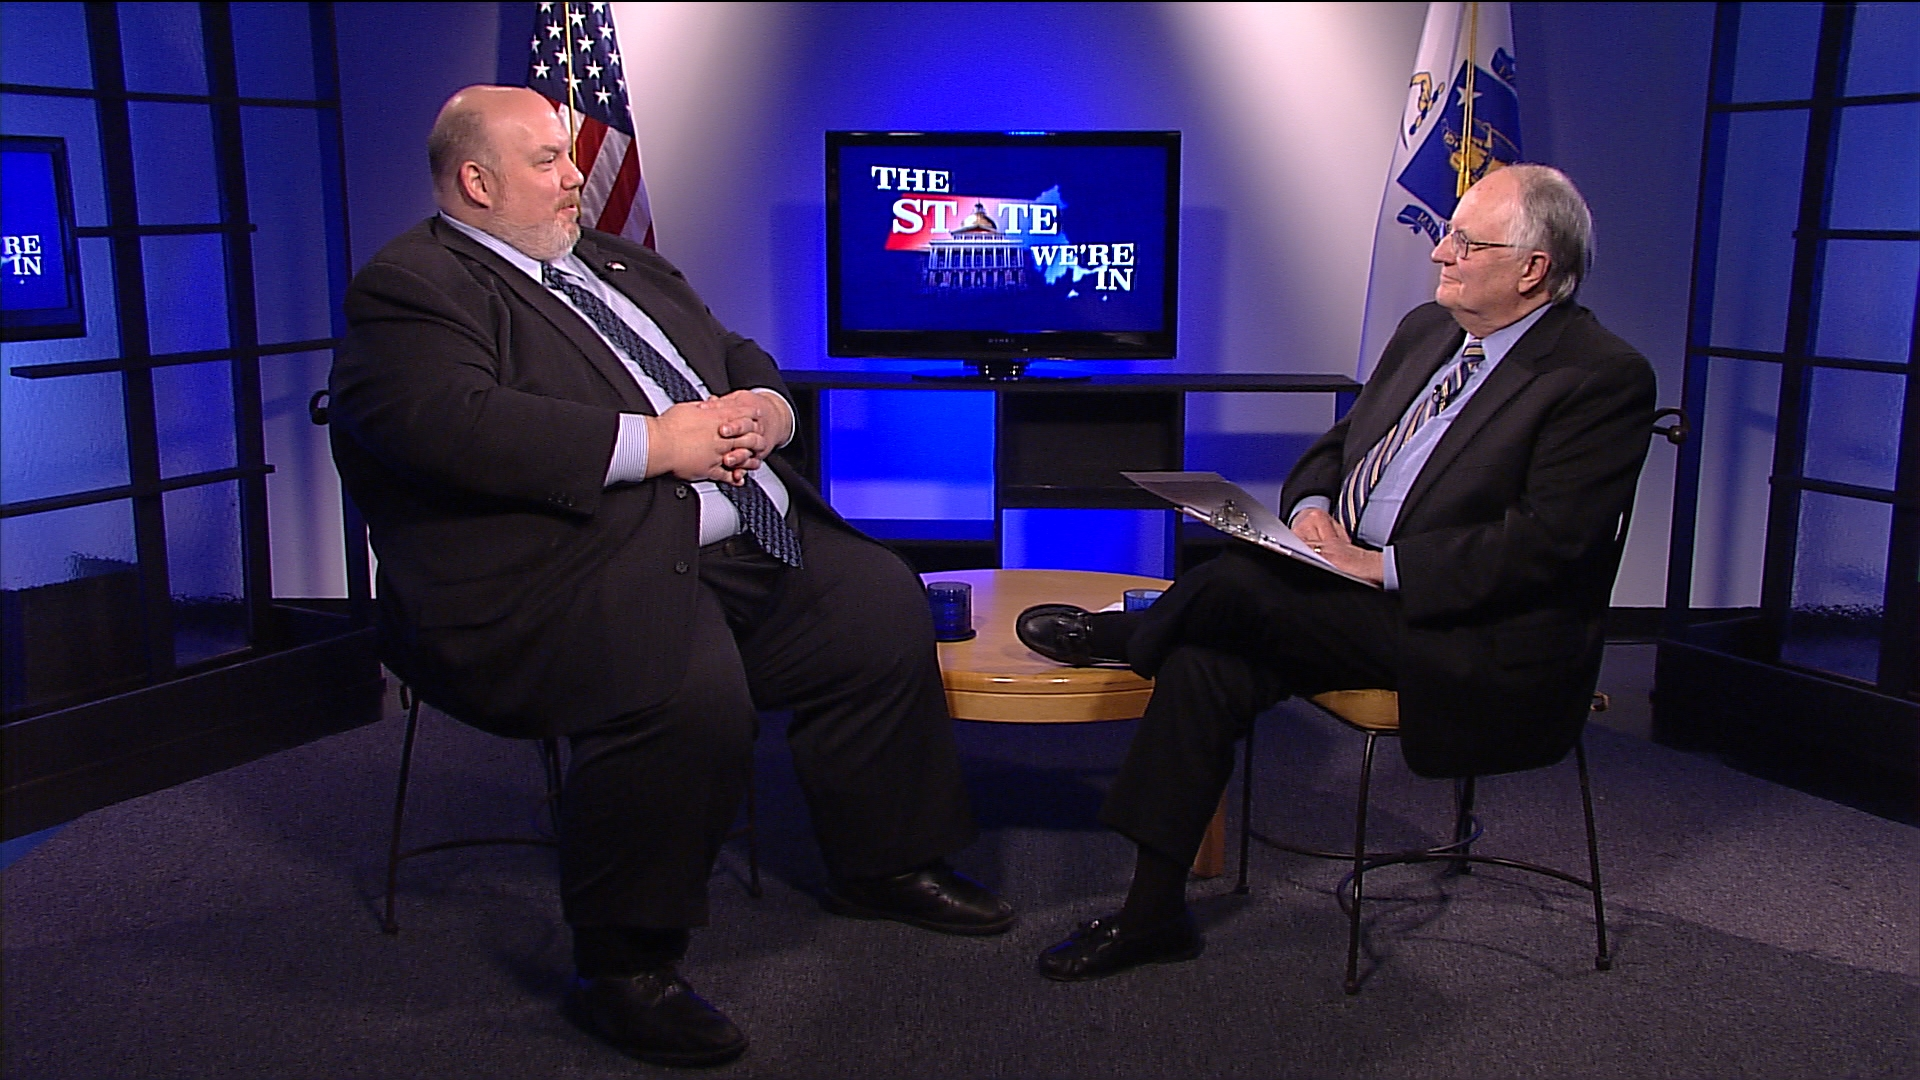 State Senator Don Humason (D-Westfield) discusses the 2017 Legislative Session, including possible action on charter schools & legalized marijuana.